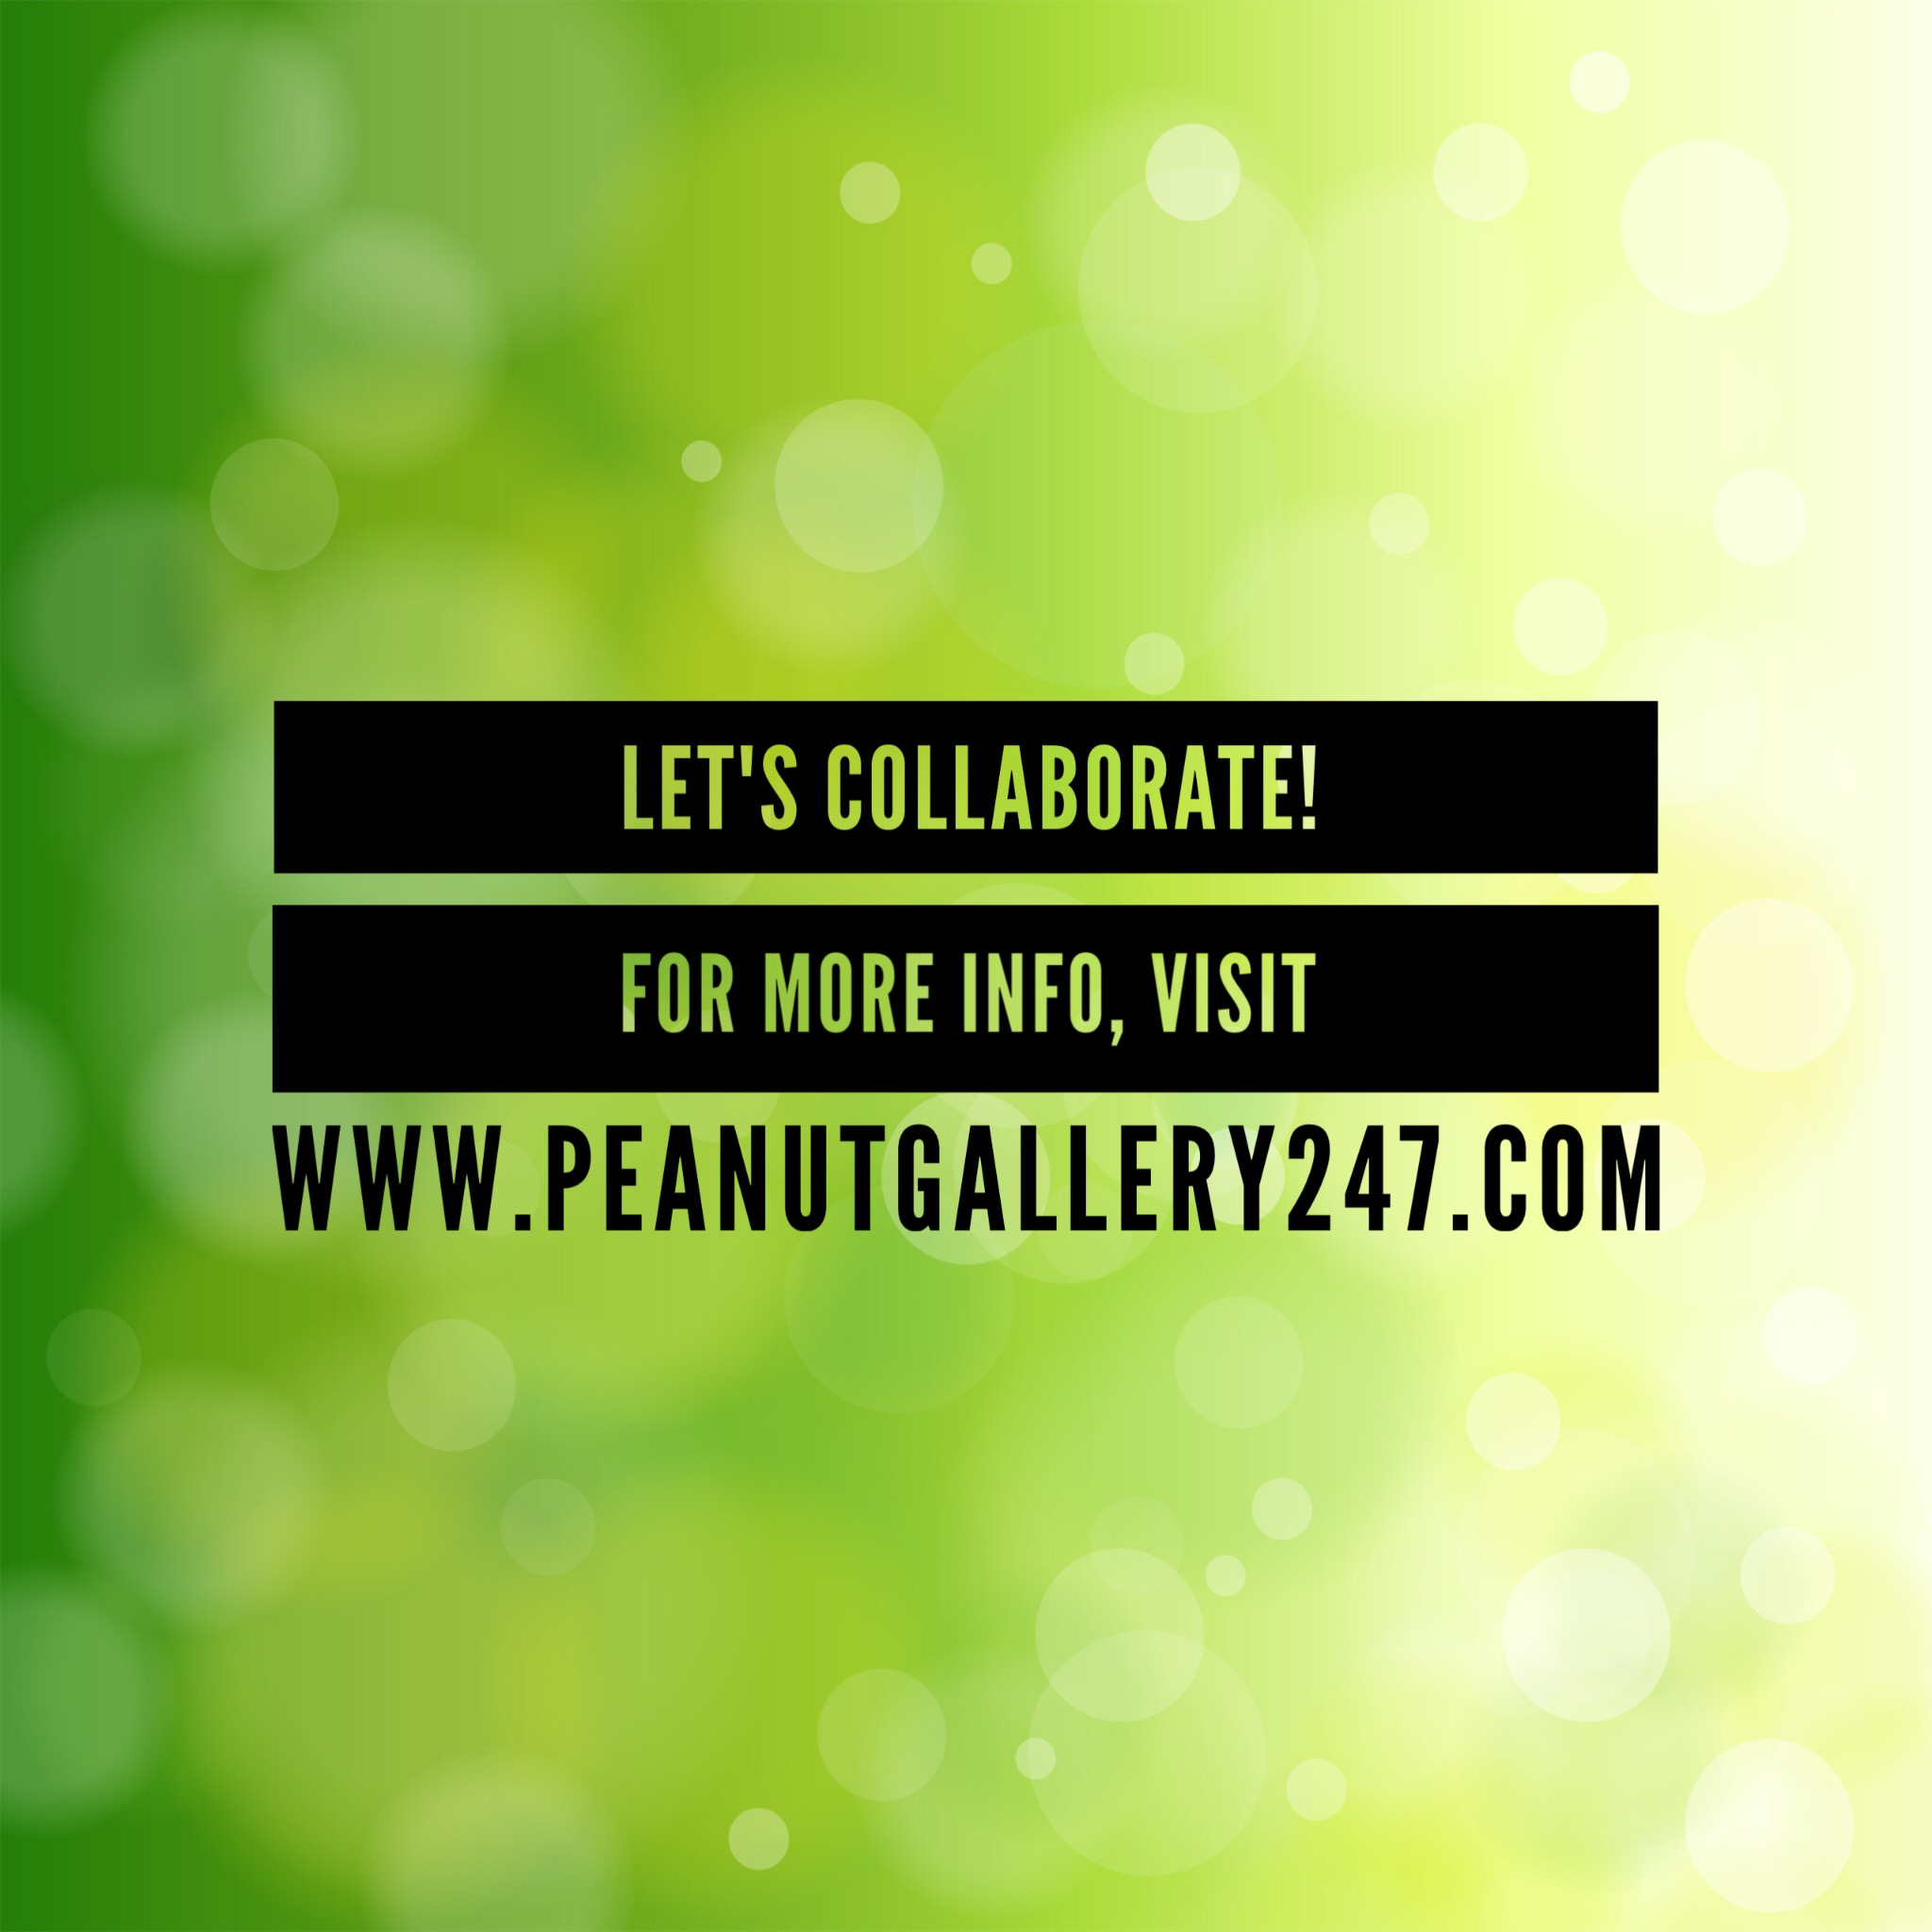 Let's Collaborate